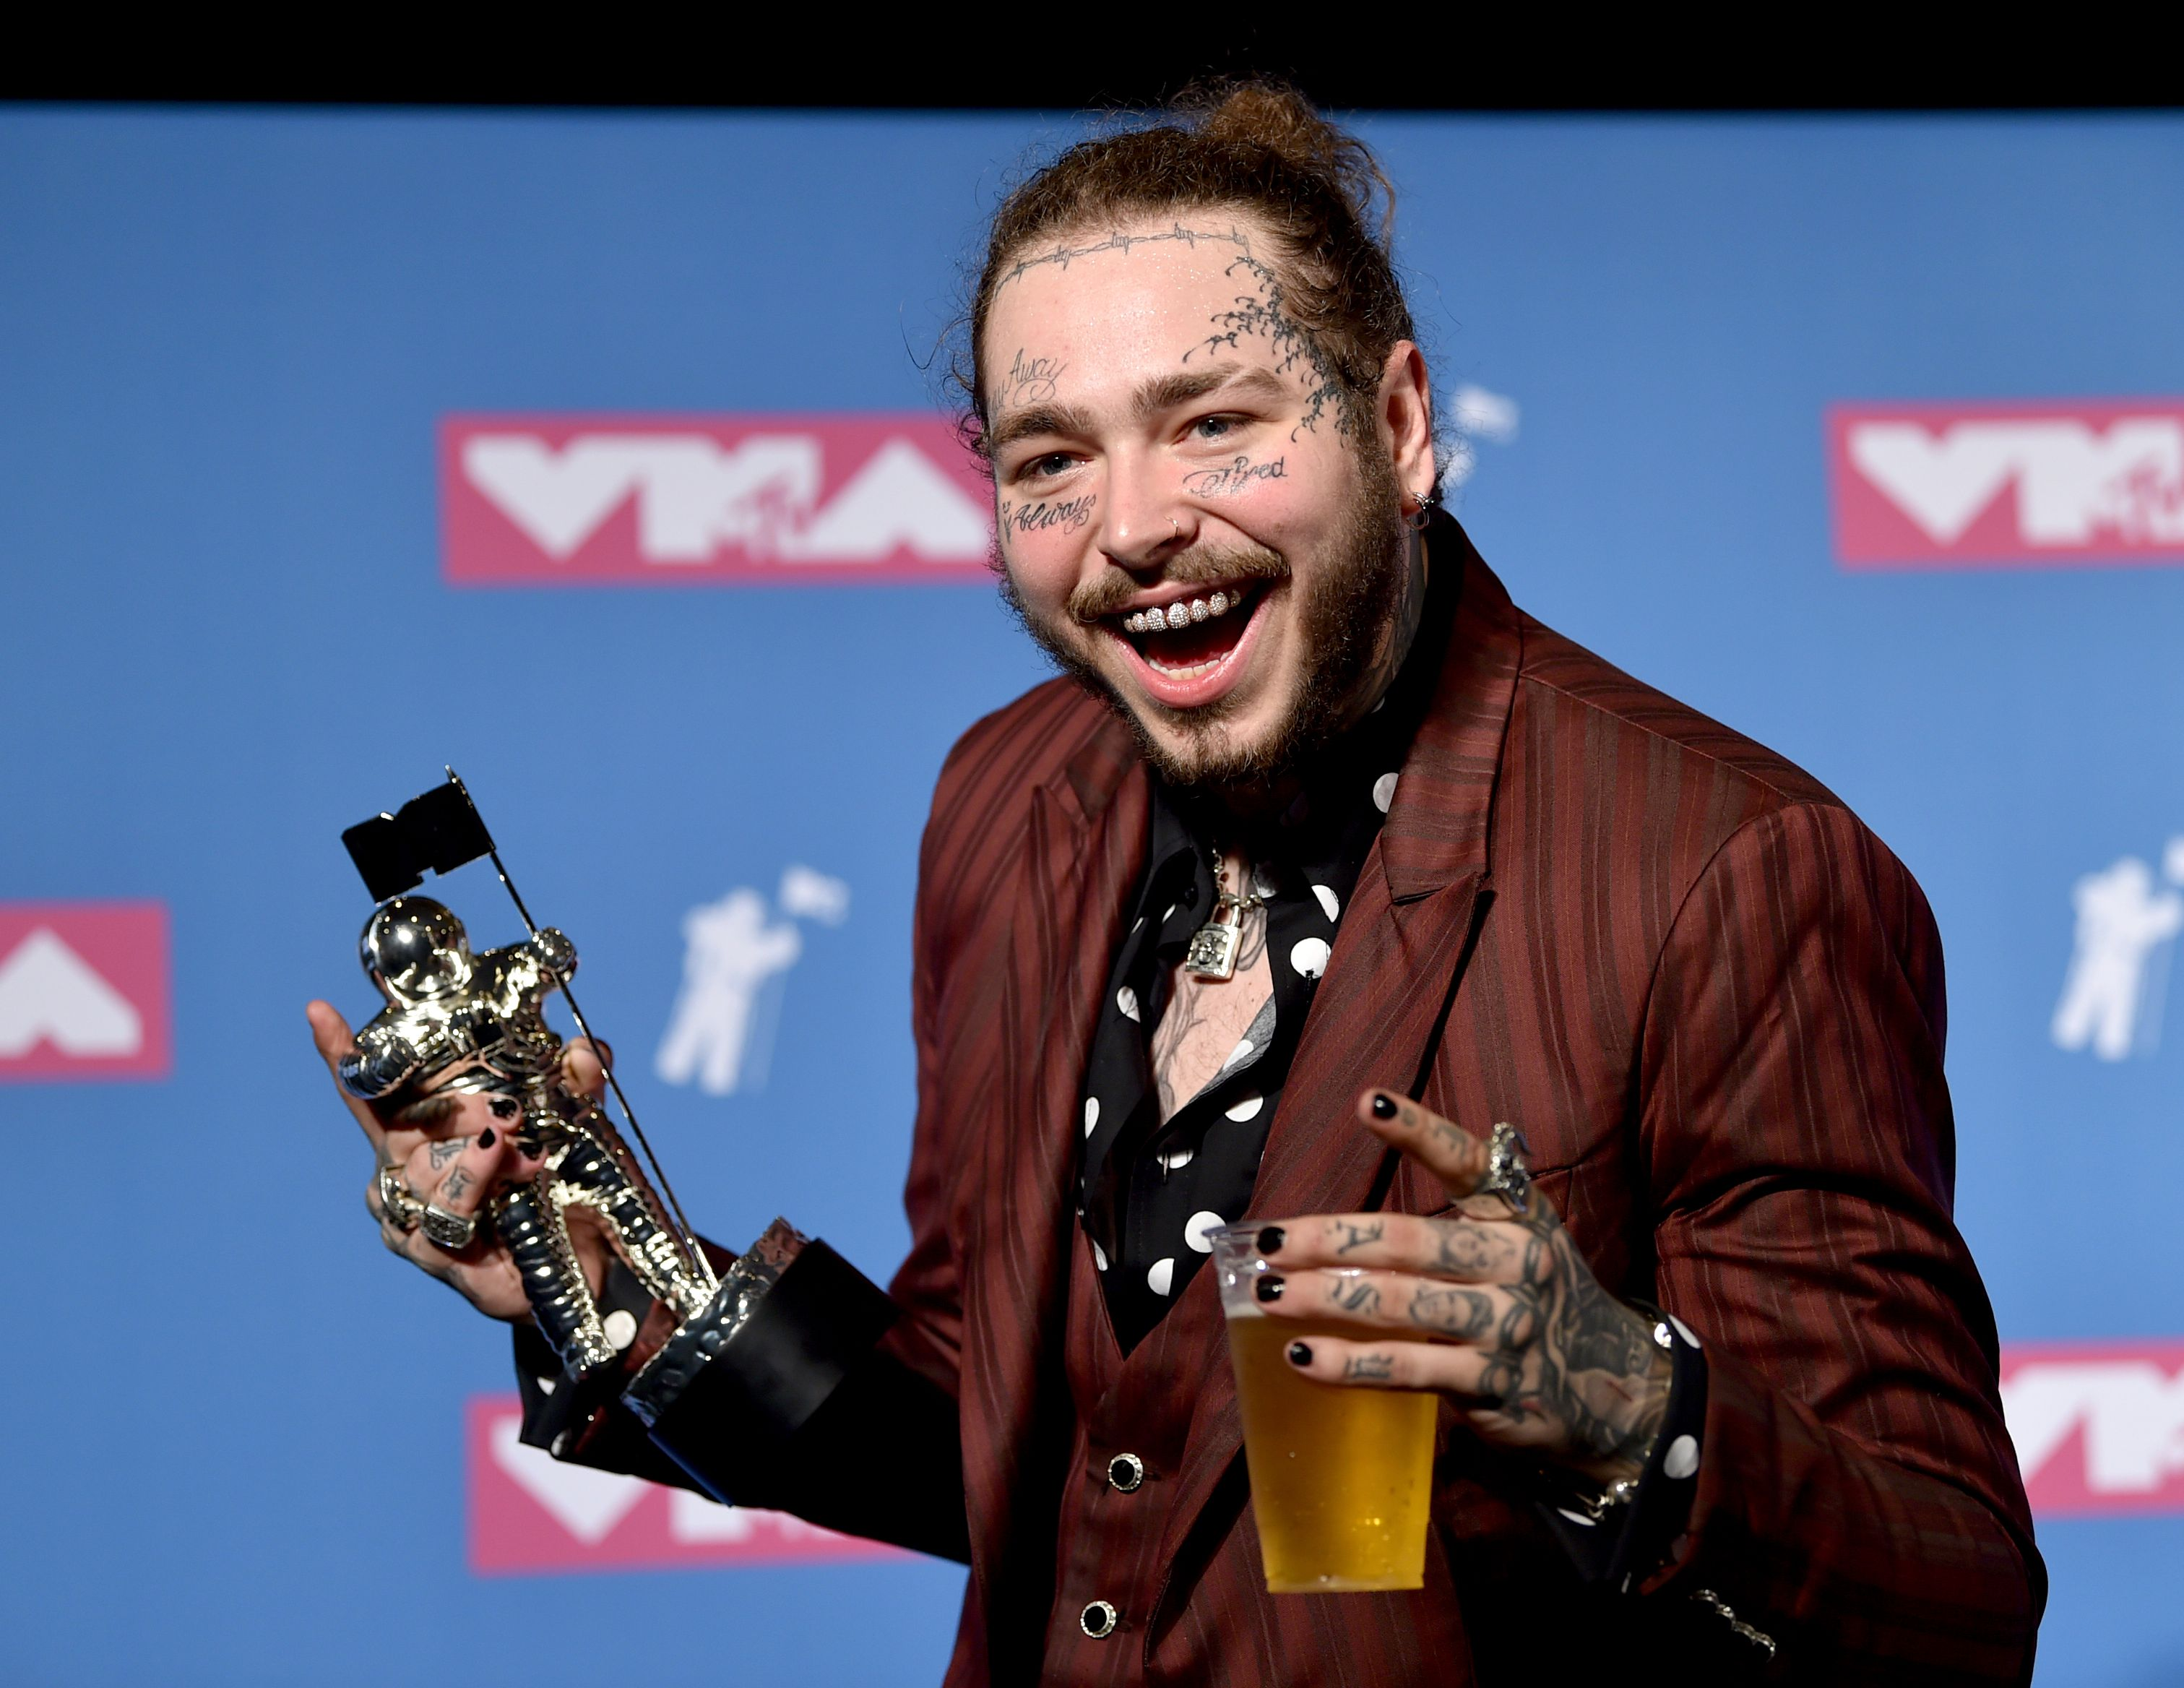 Post Malone says he's 'shook' after his plane makes emergency landing